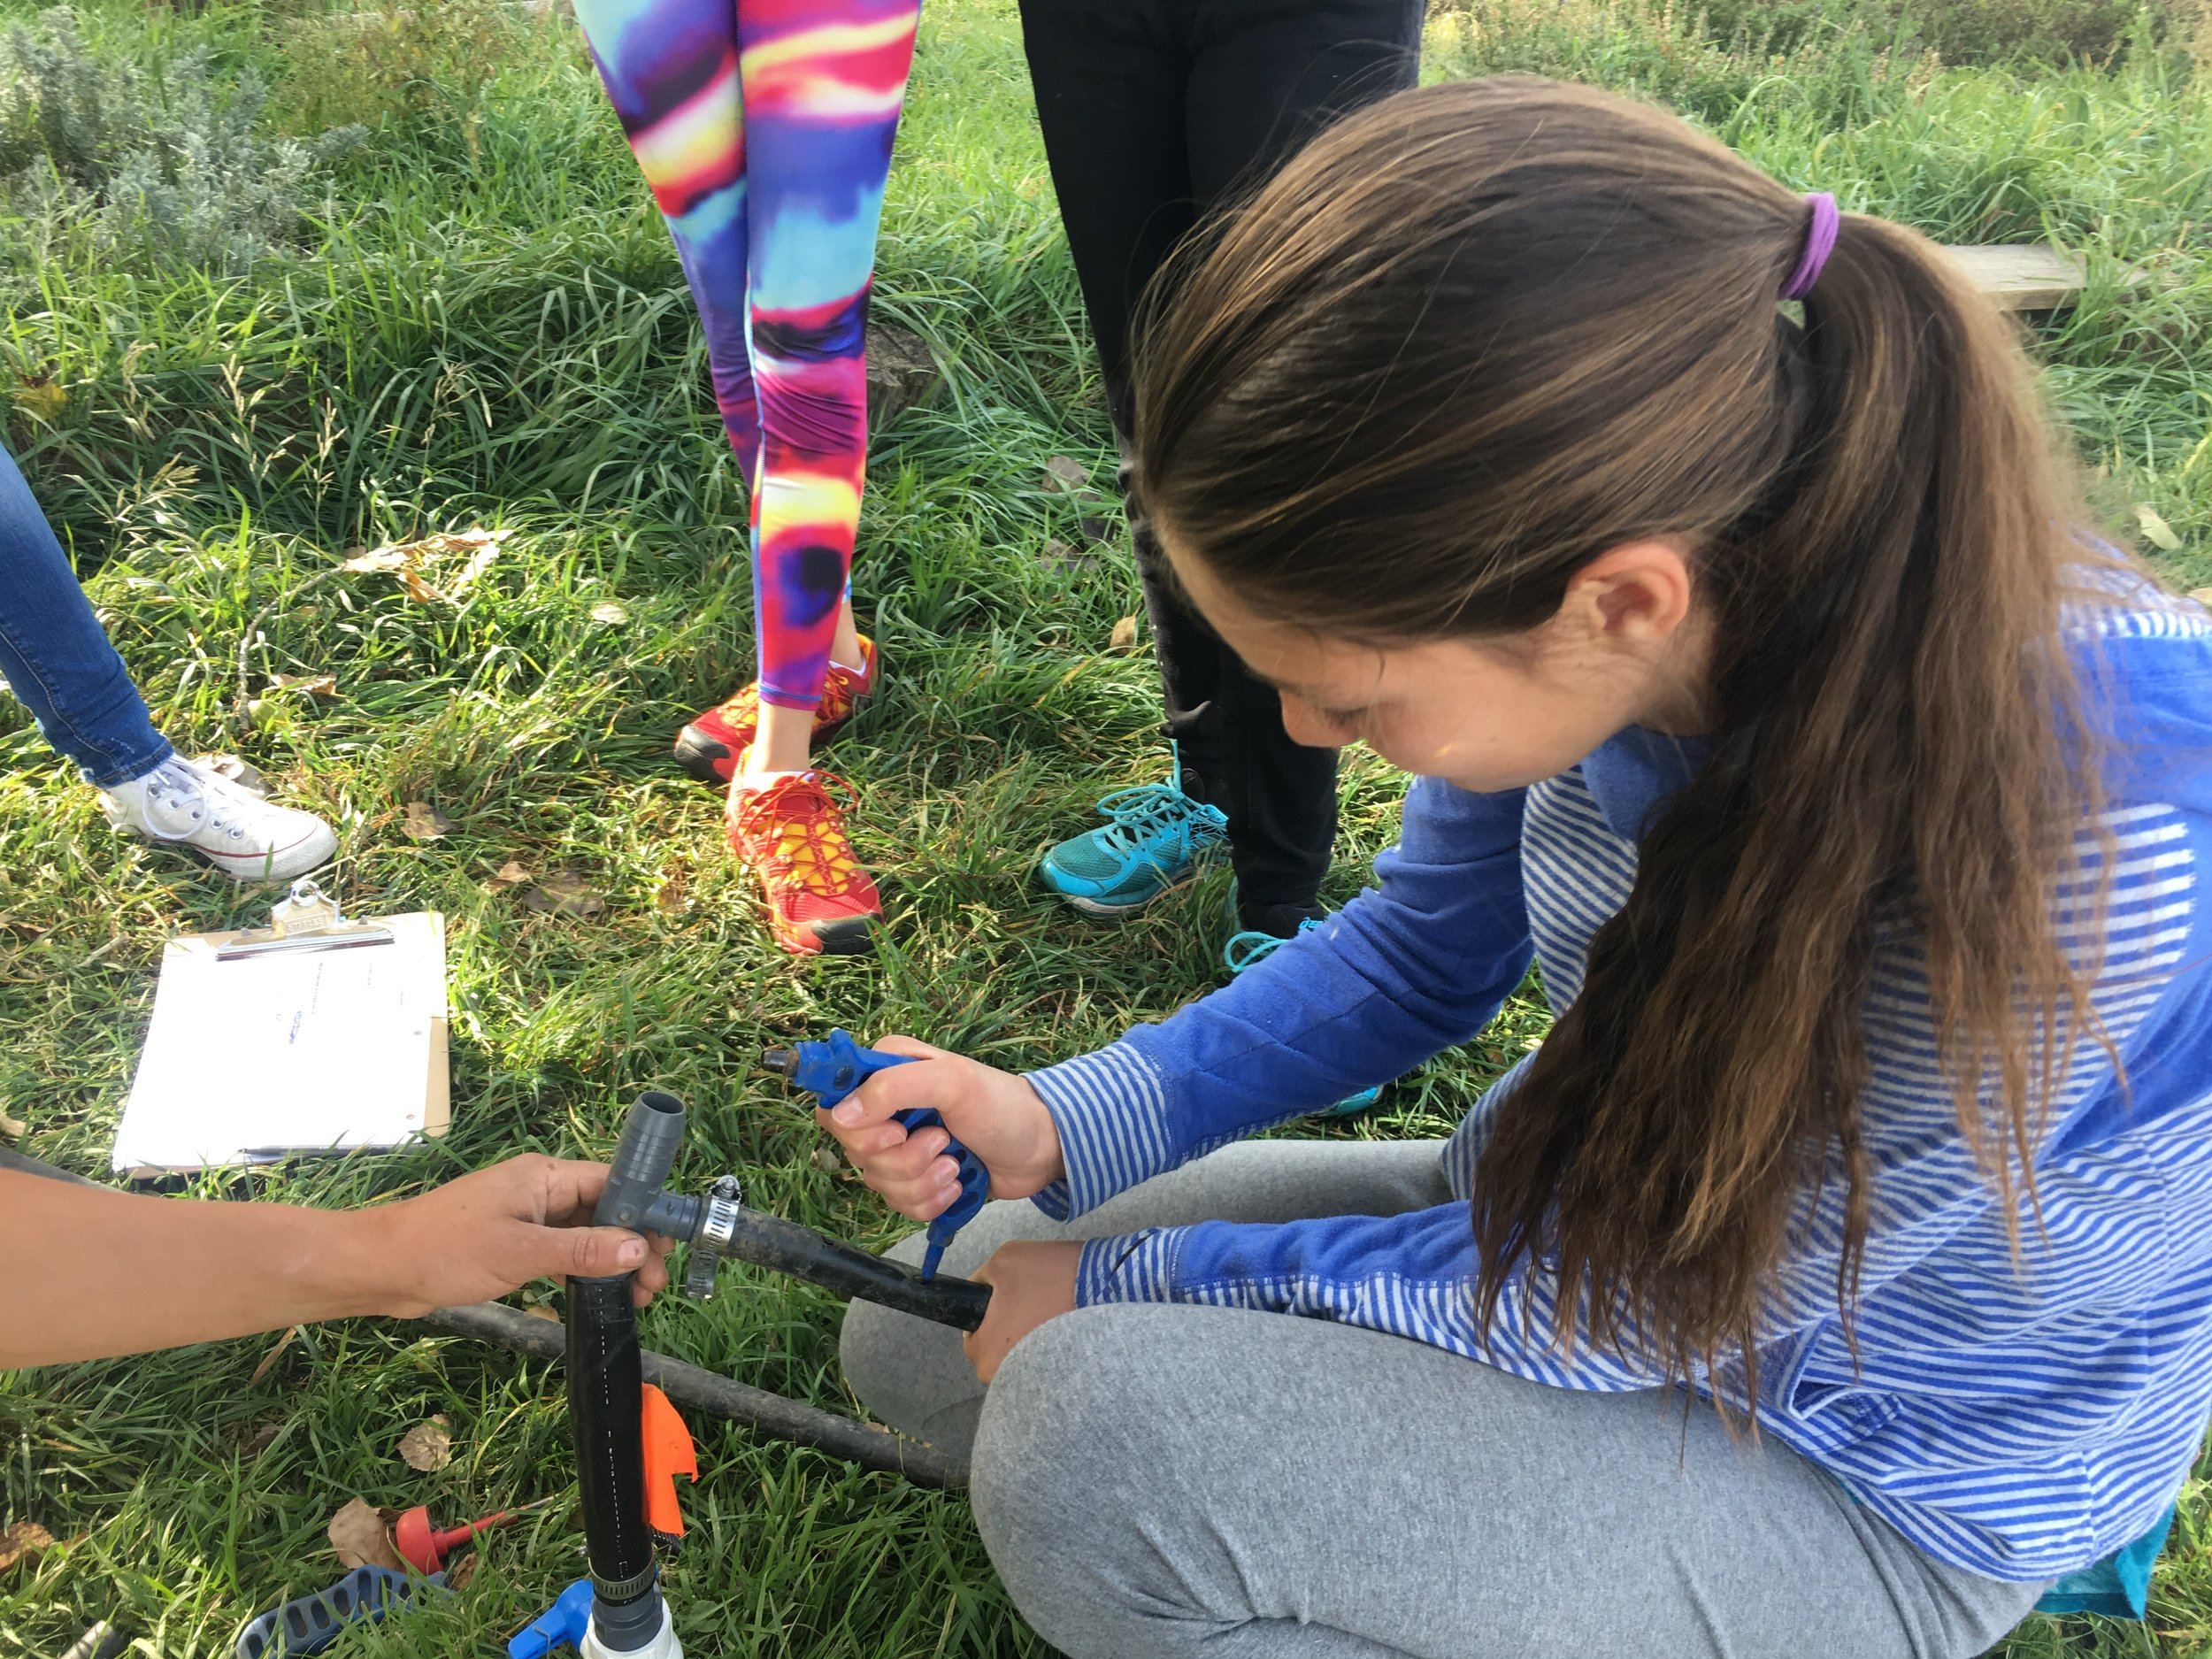 For science, while studying climate change and sustainable energy, in the fall of 2017 the middle school is building an irrigation system for the Nature Park. In this way they don't just learn about a topic, they put it into real life application.